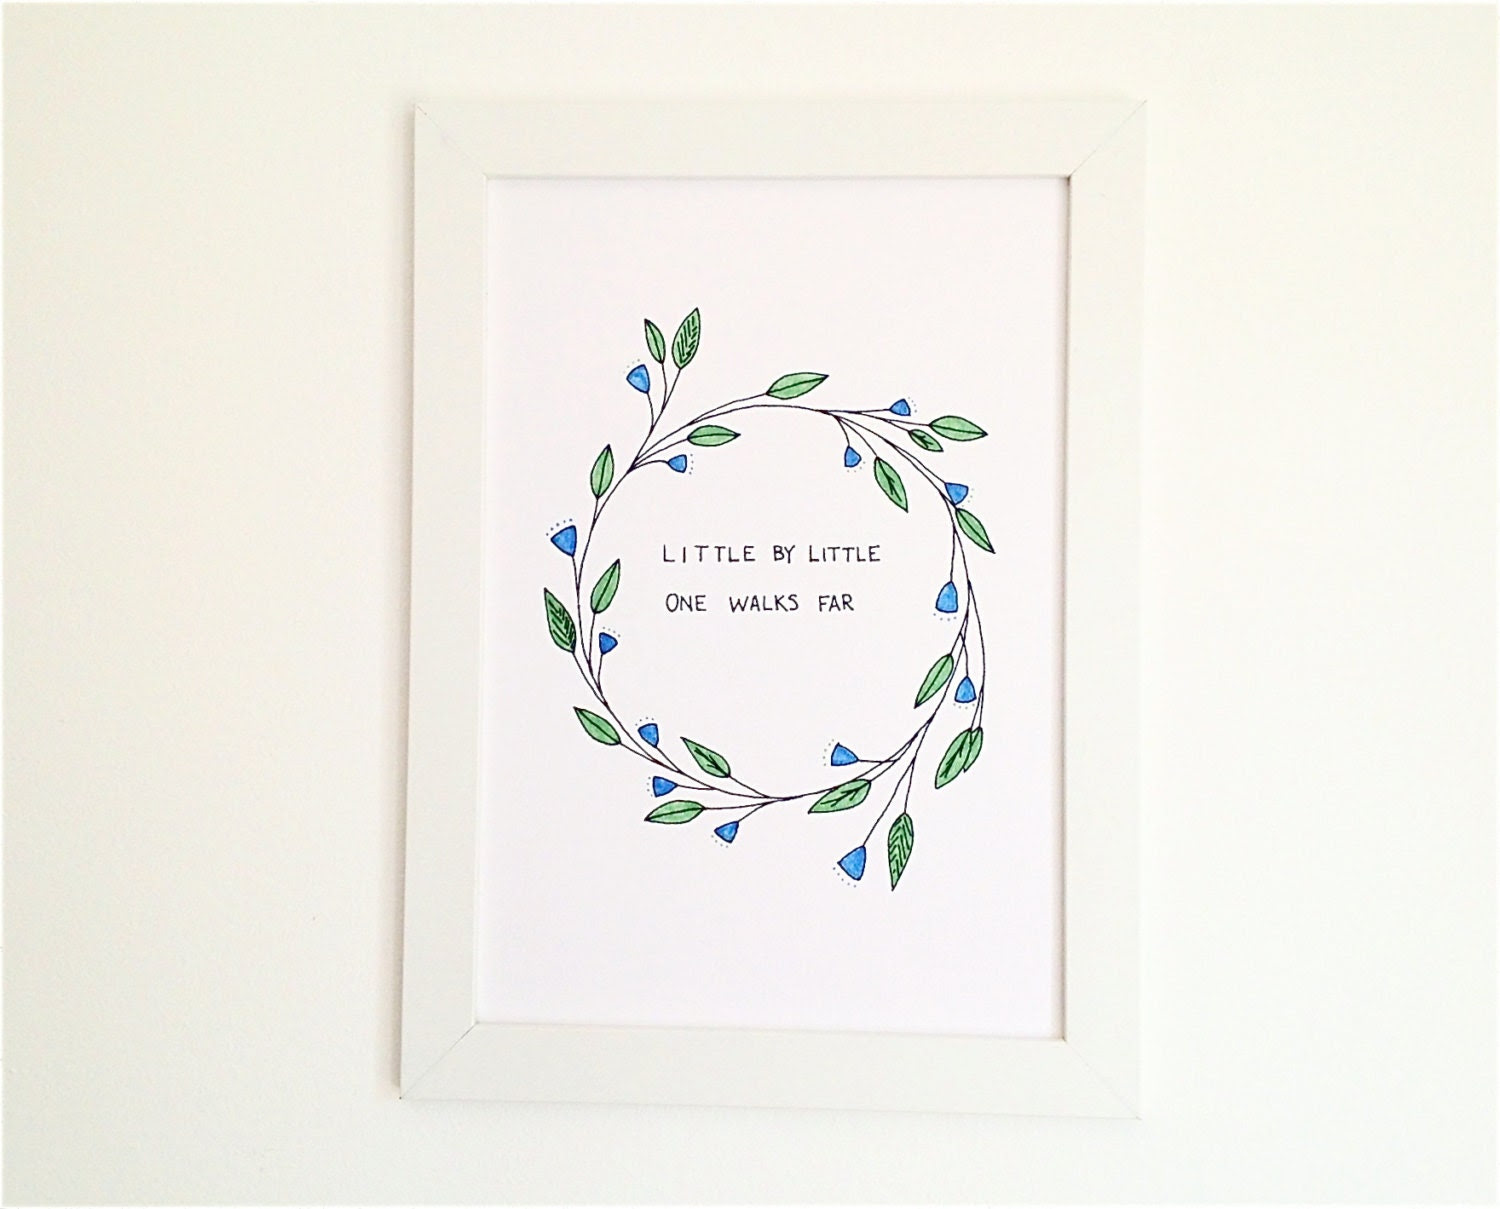 Nursery Wall Art with Inspirational Quote, Botanical Illustration in Green and Blue